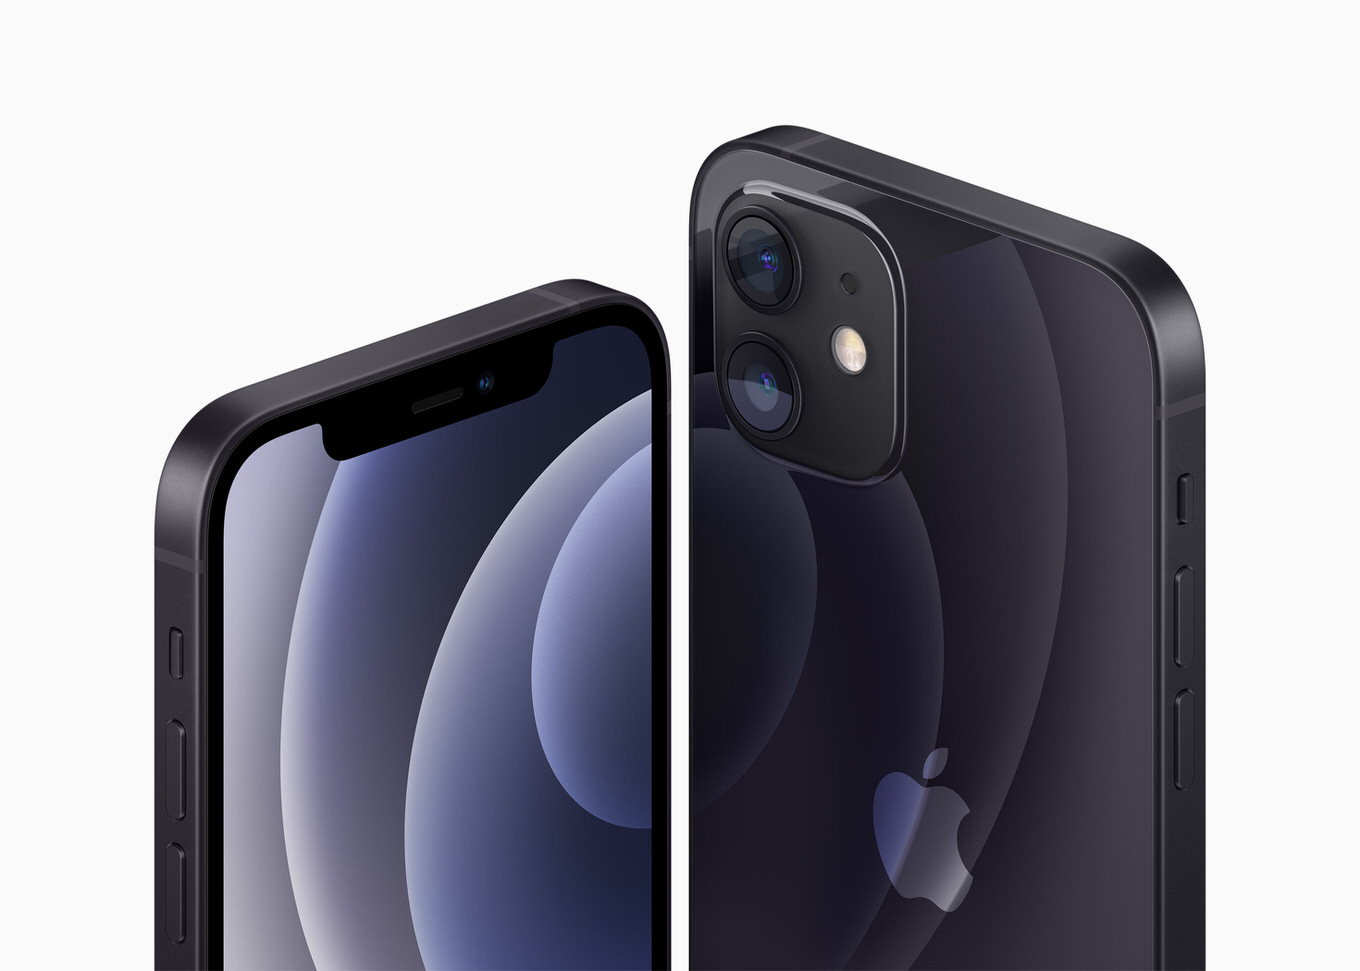 apple_iphone-12_color-black_10132020